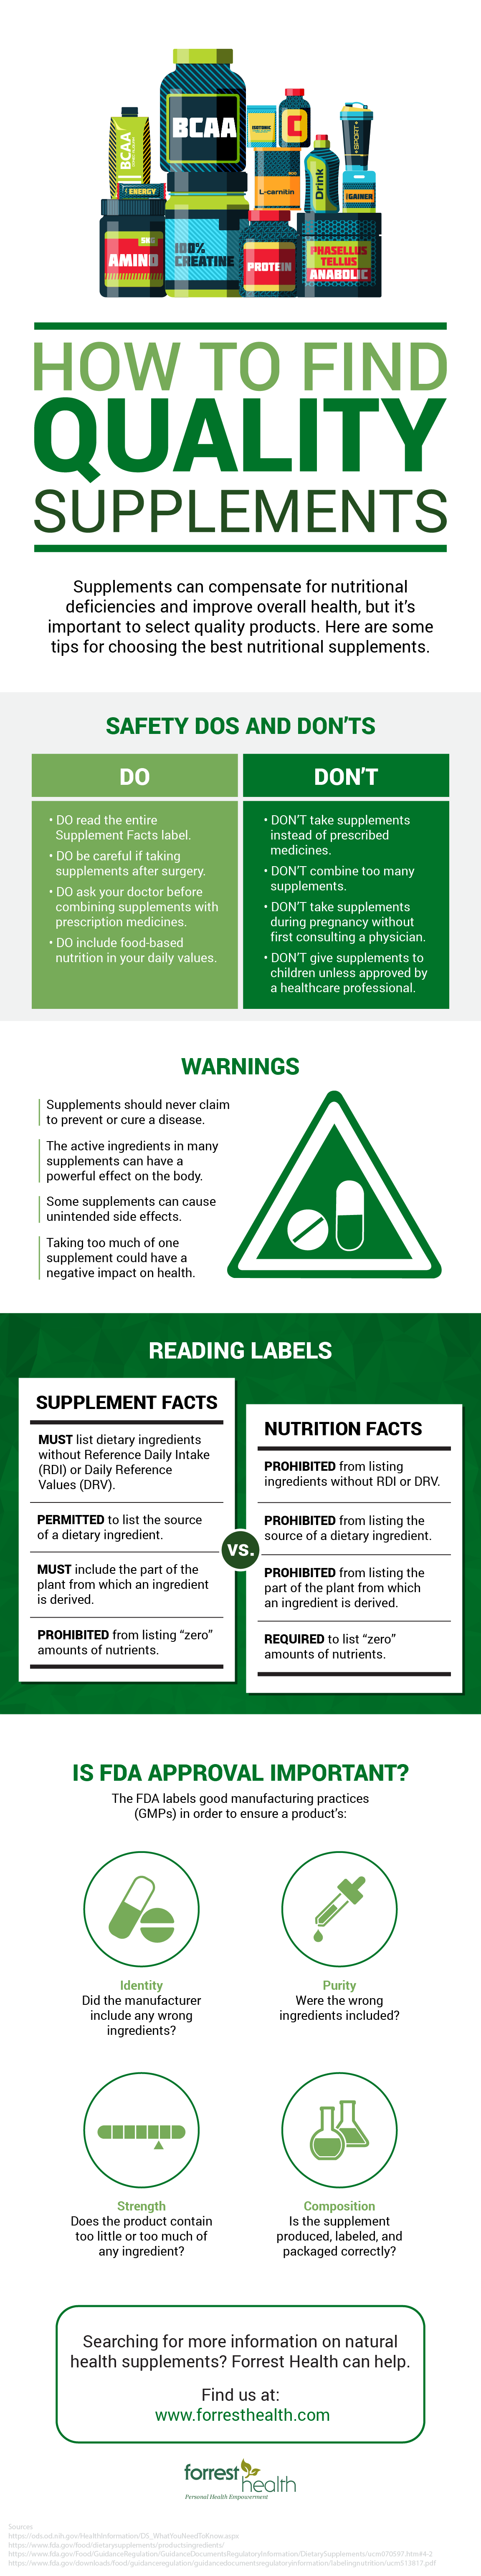 How to Find Quality Supplements Infographic